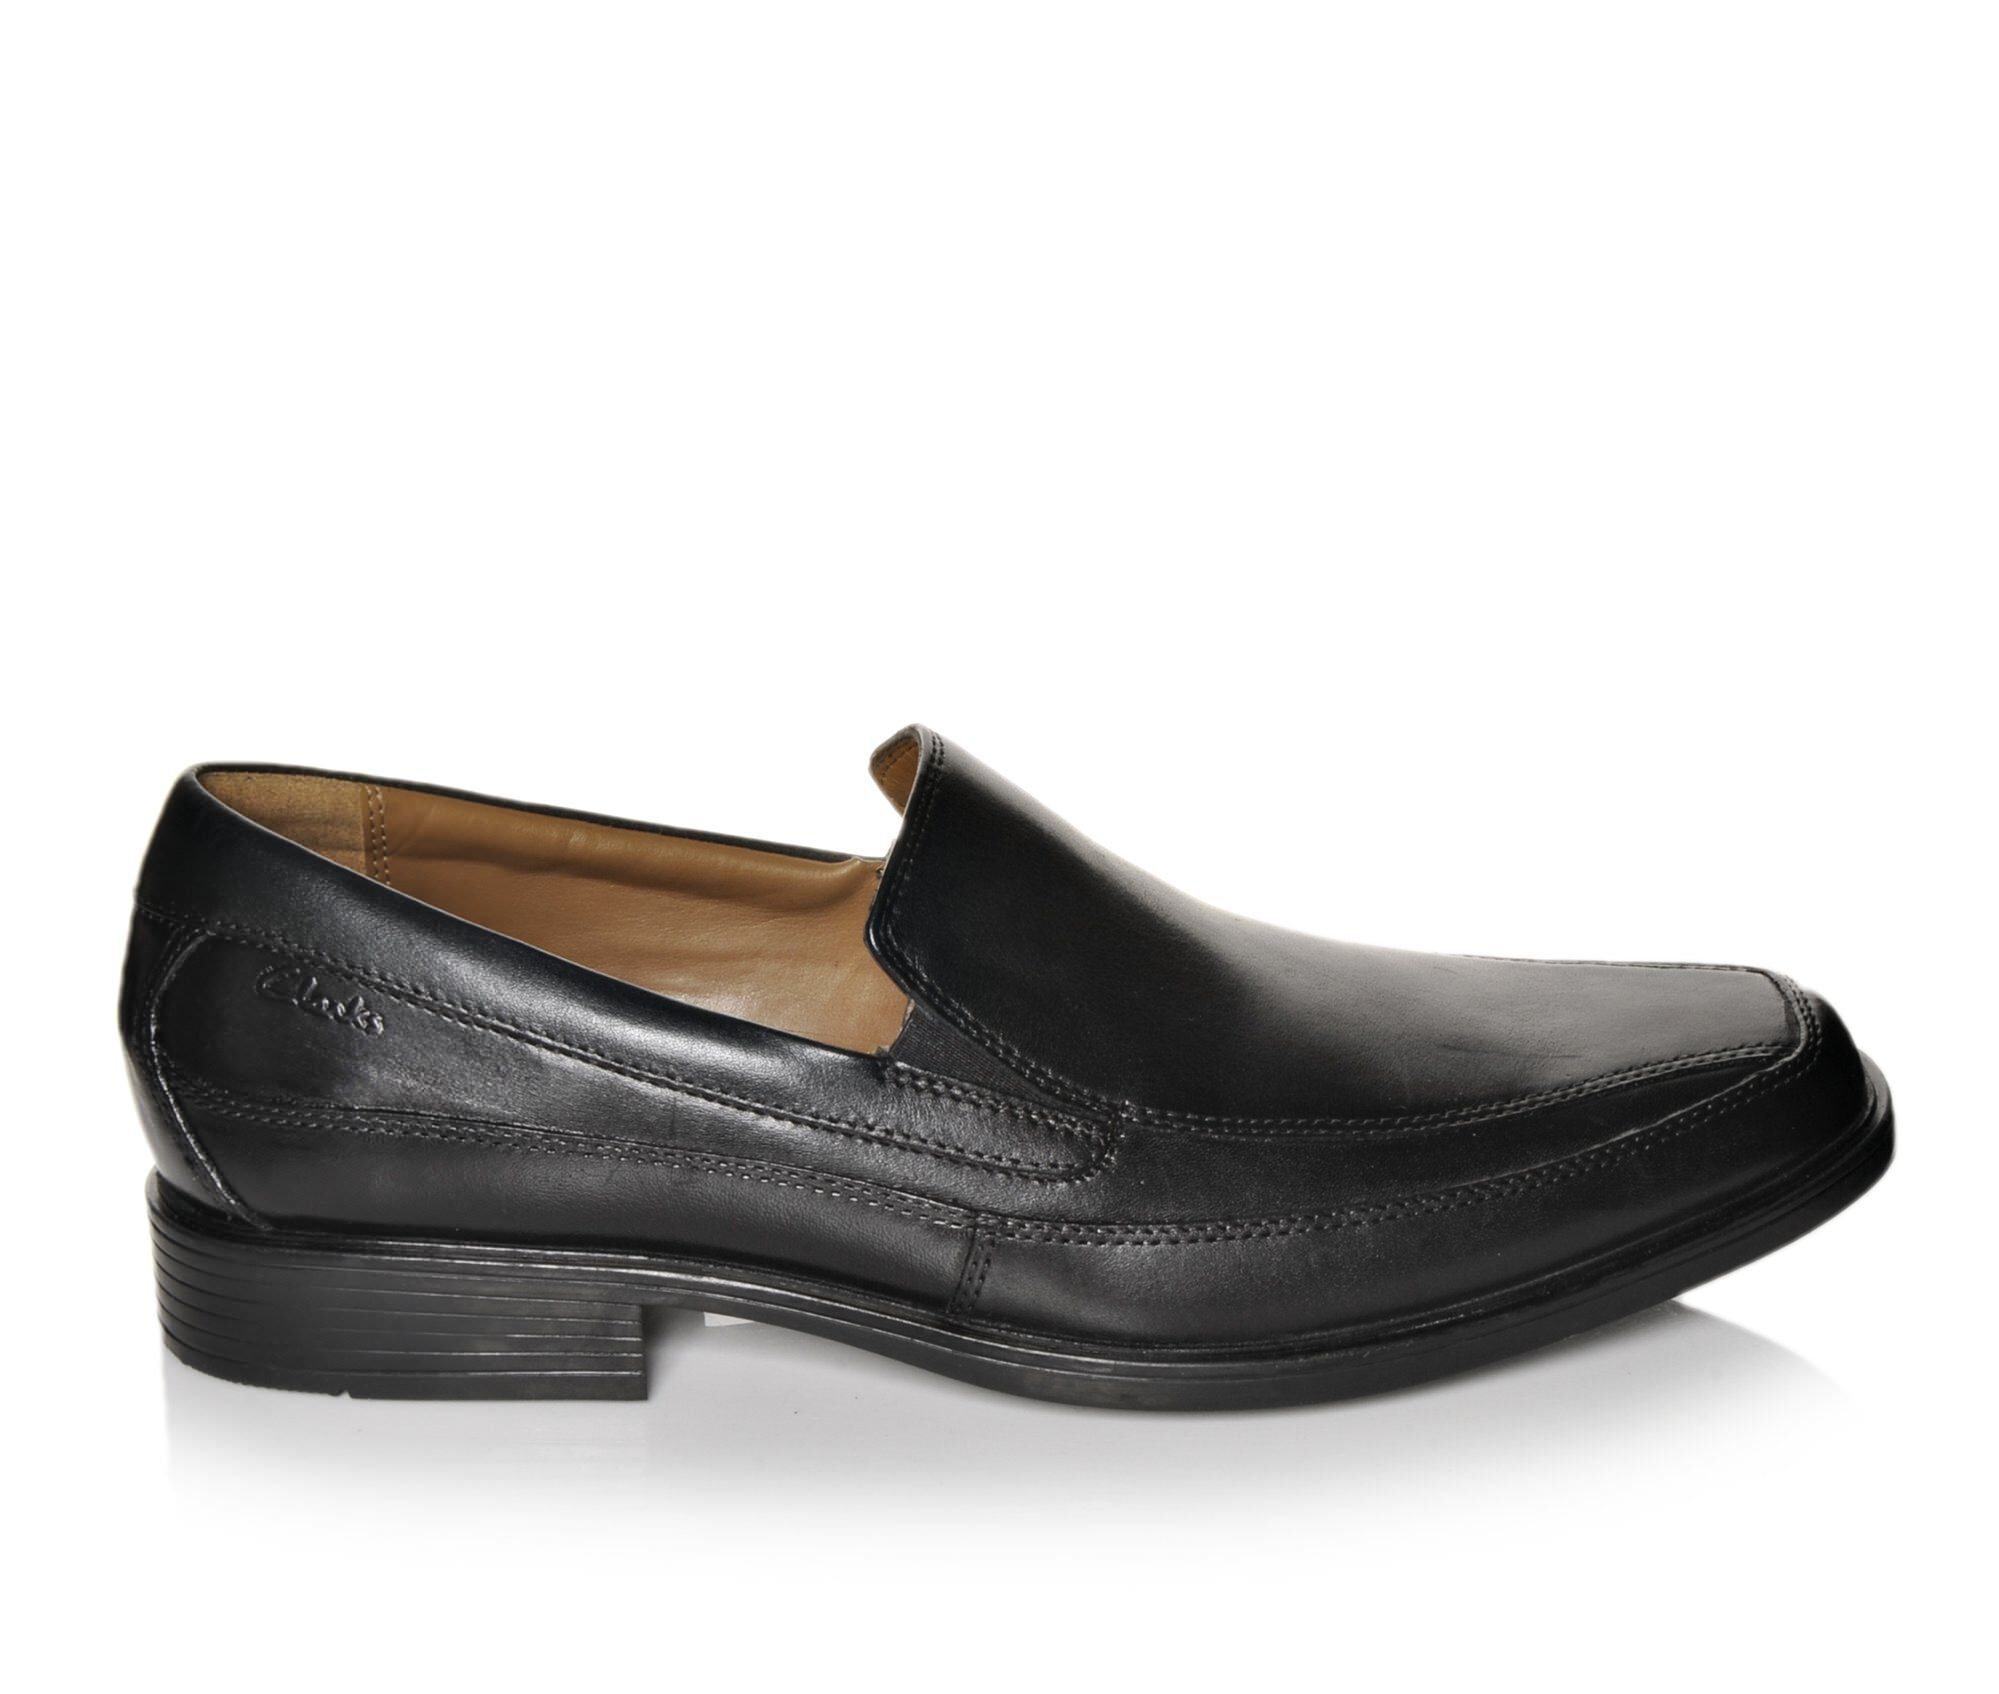 Men's Clarks Tilden Free Dress Shoes Black